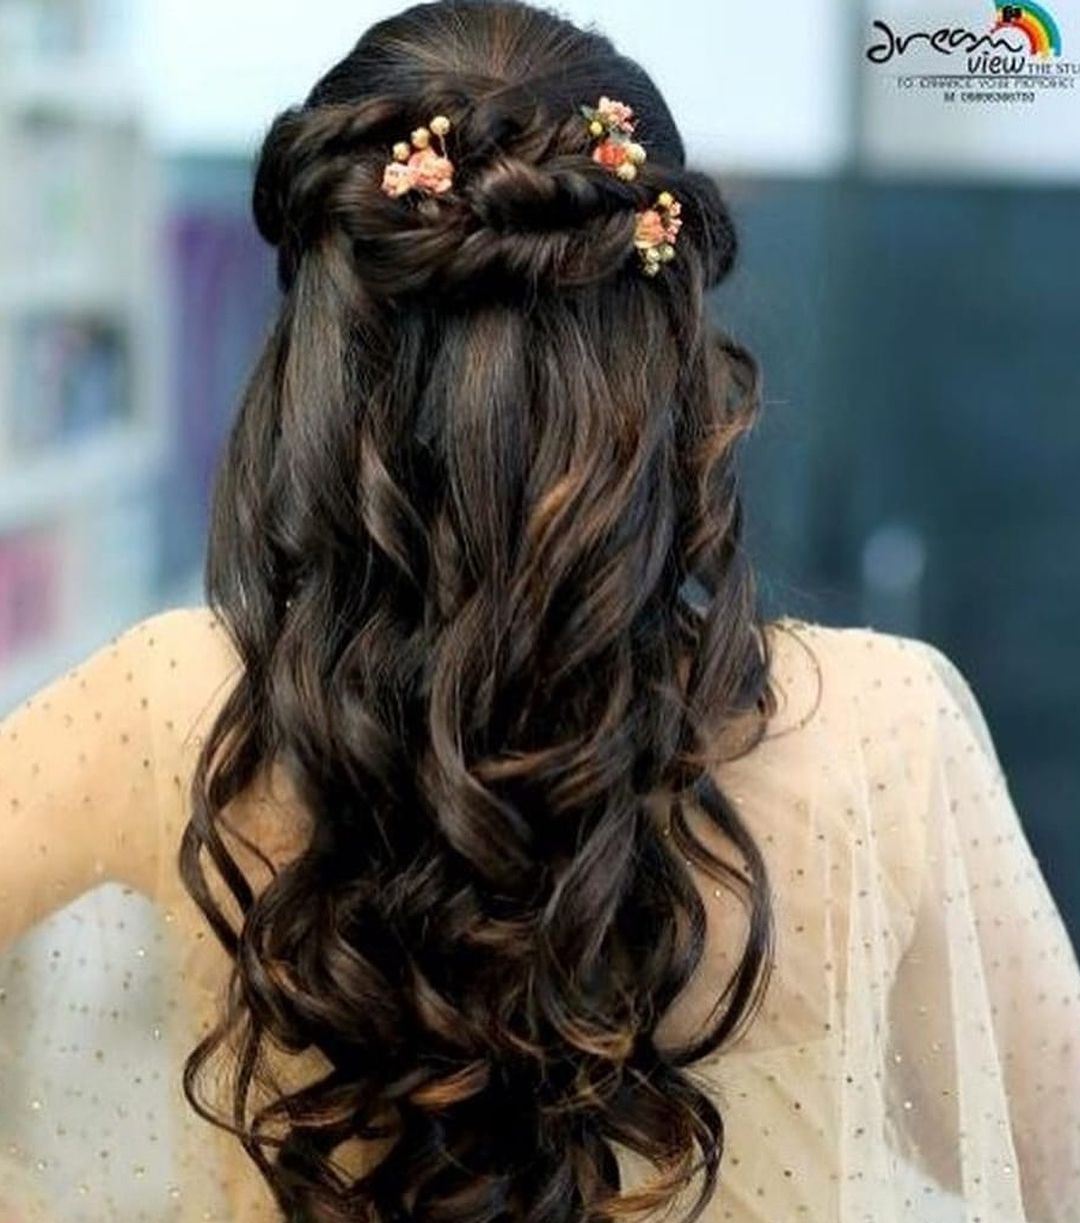 25 Pre Wedding Hairstyles For Mehndi Haldi Or More Functions Bridemaids Hairstyles Hair Styles Indian Wedding Hairstyles